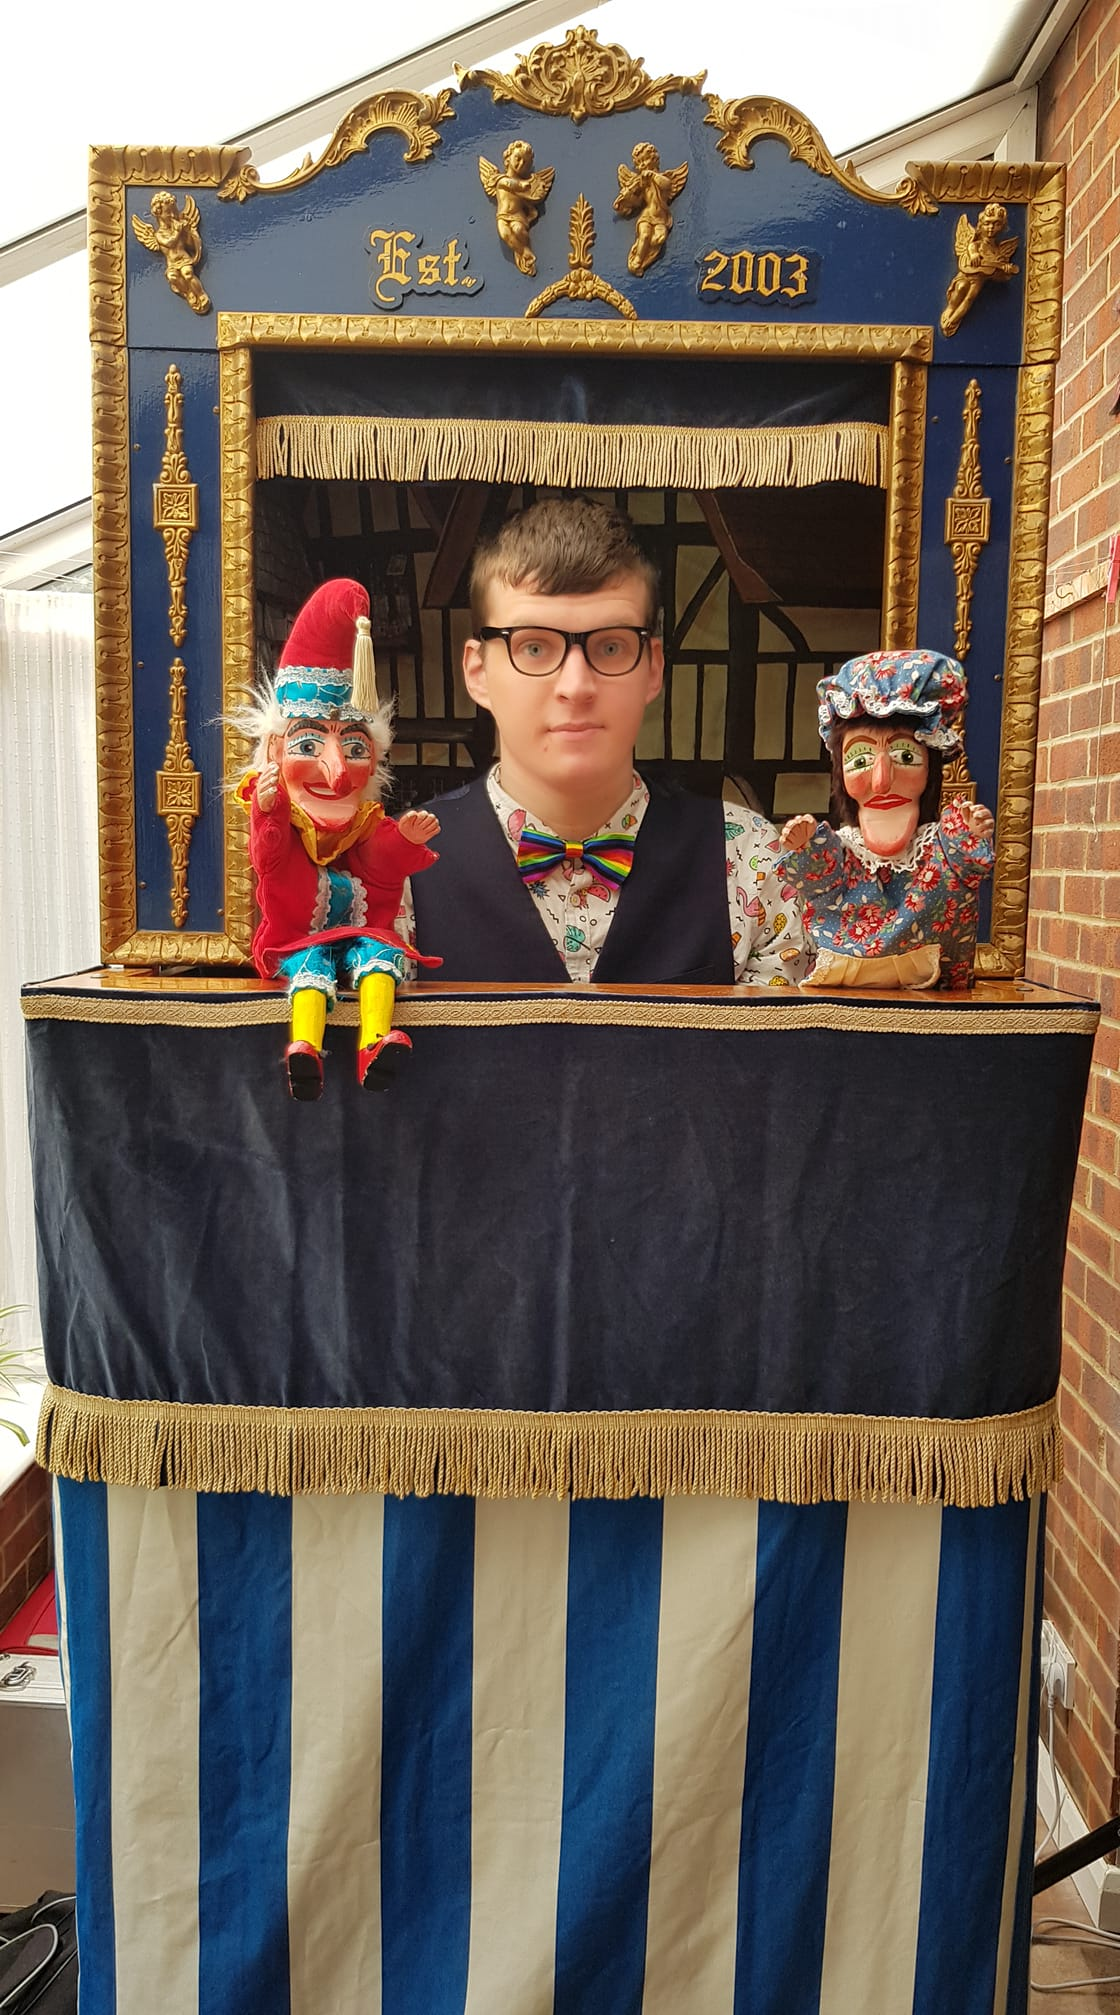 Professor Harvo with Mr Punch and Judy inside the Punch and Judy booth